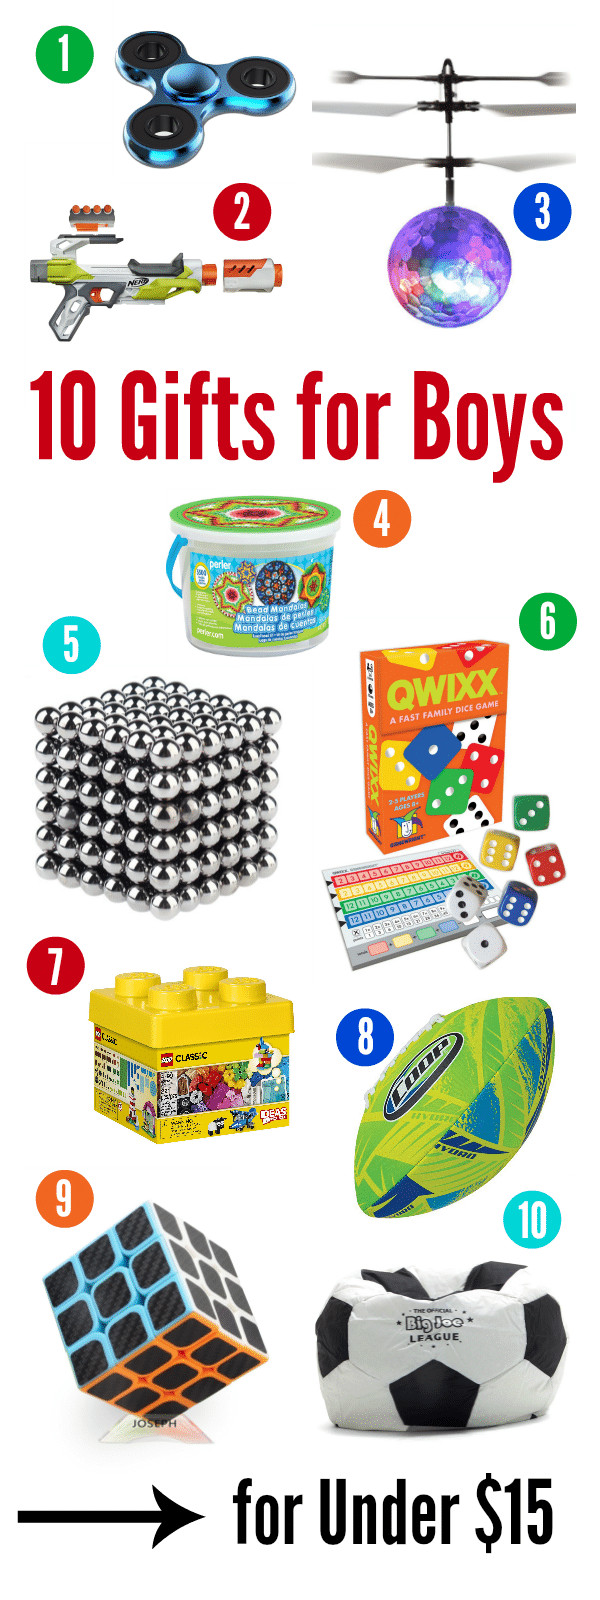 Gift Ideas For Boys 10  10 Best Gifts for a 10 Year Old Boy for Under $15 – Fun